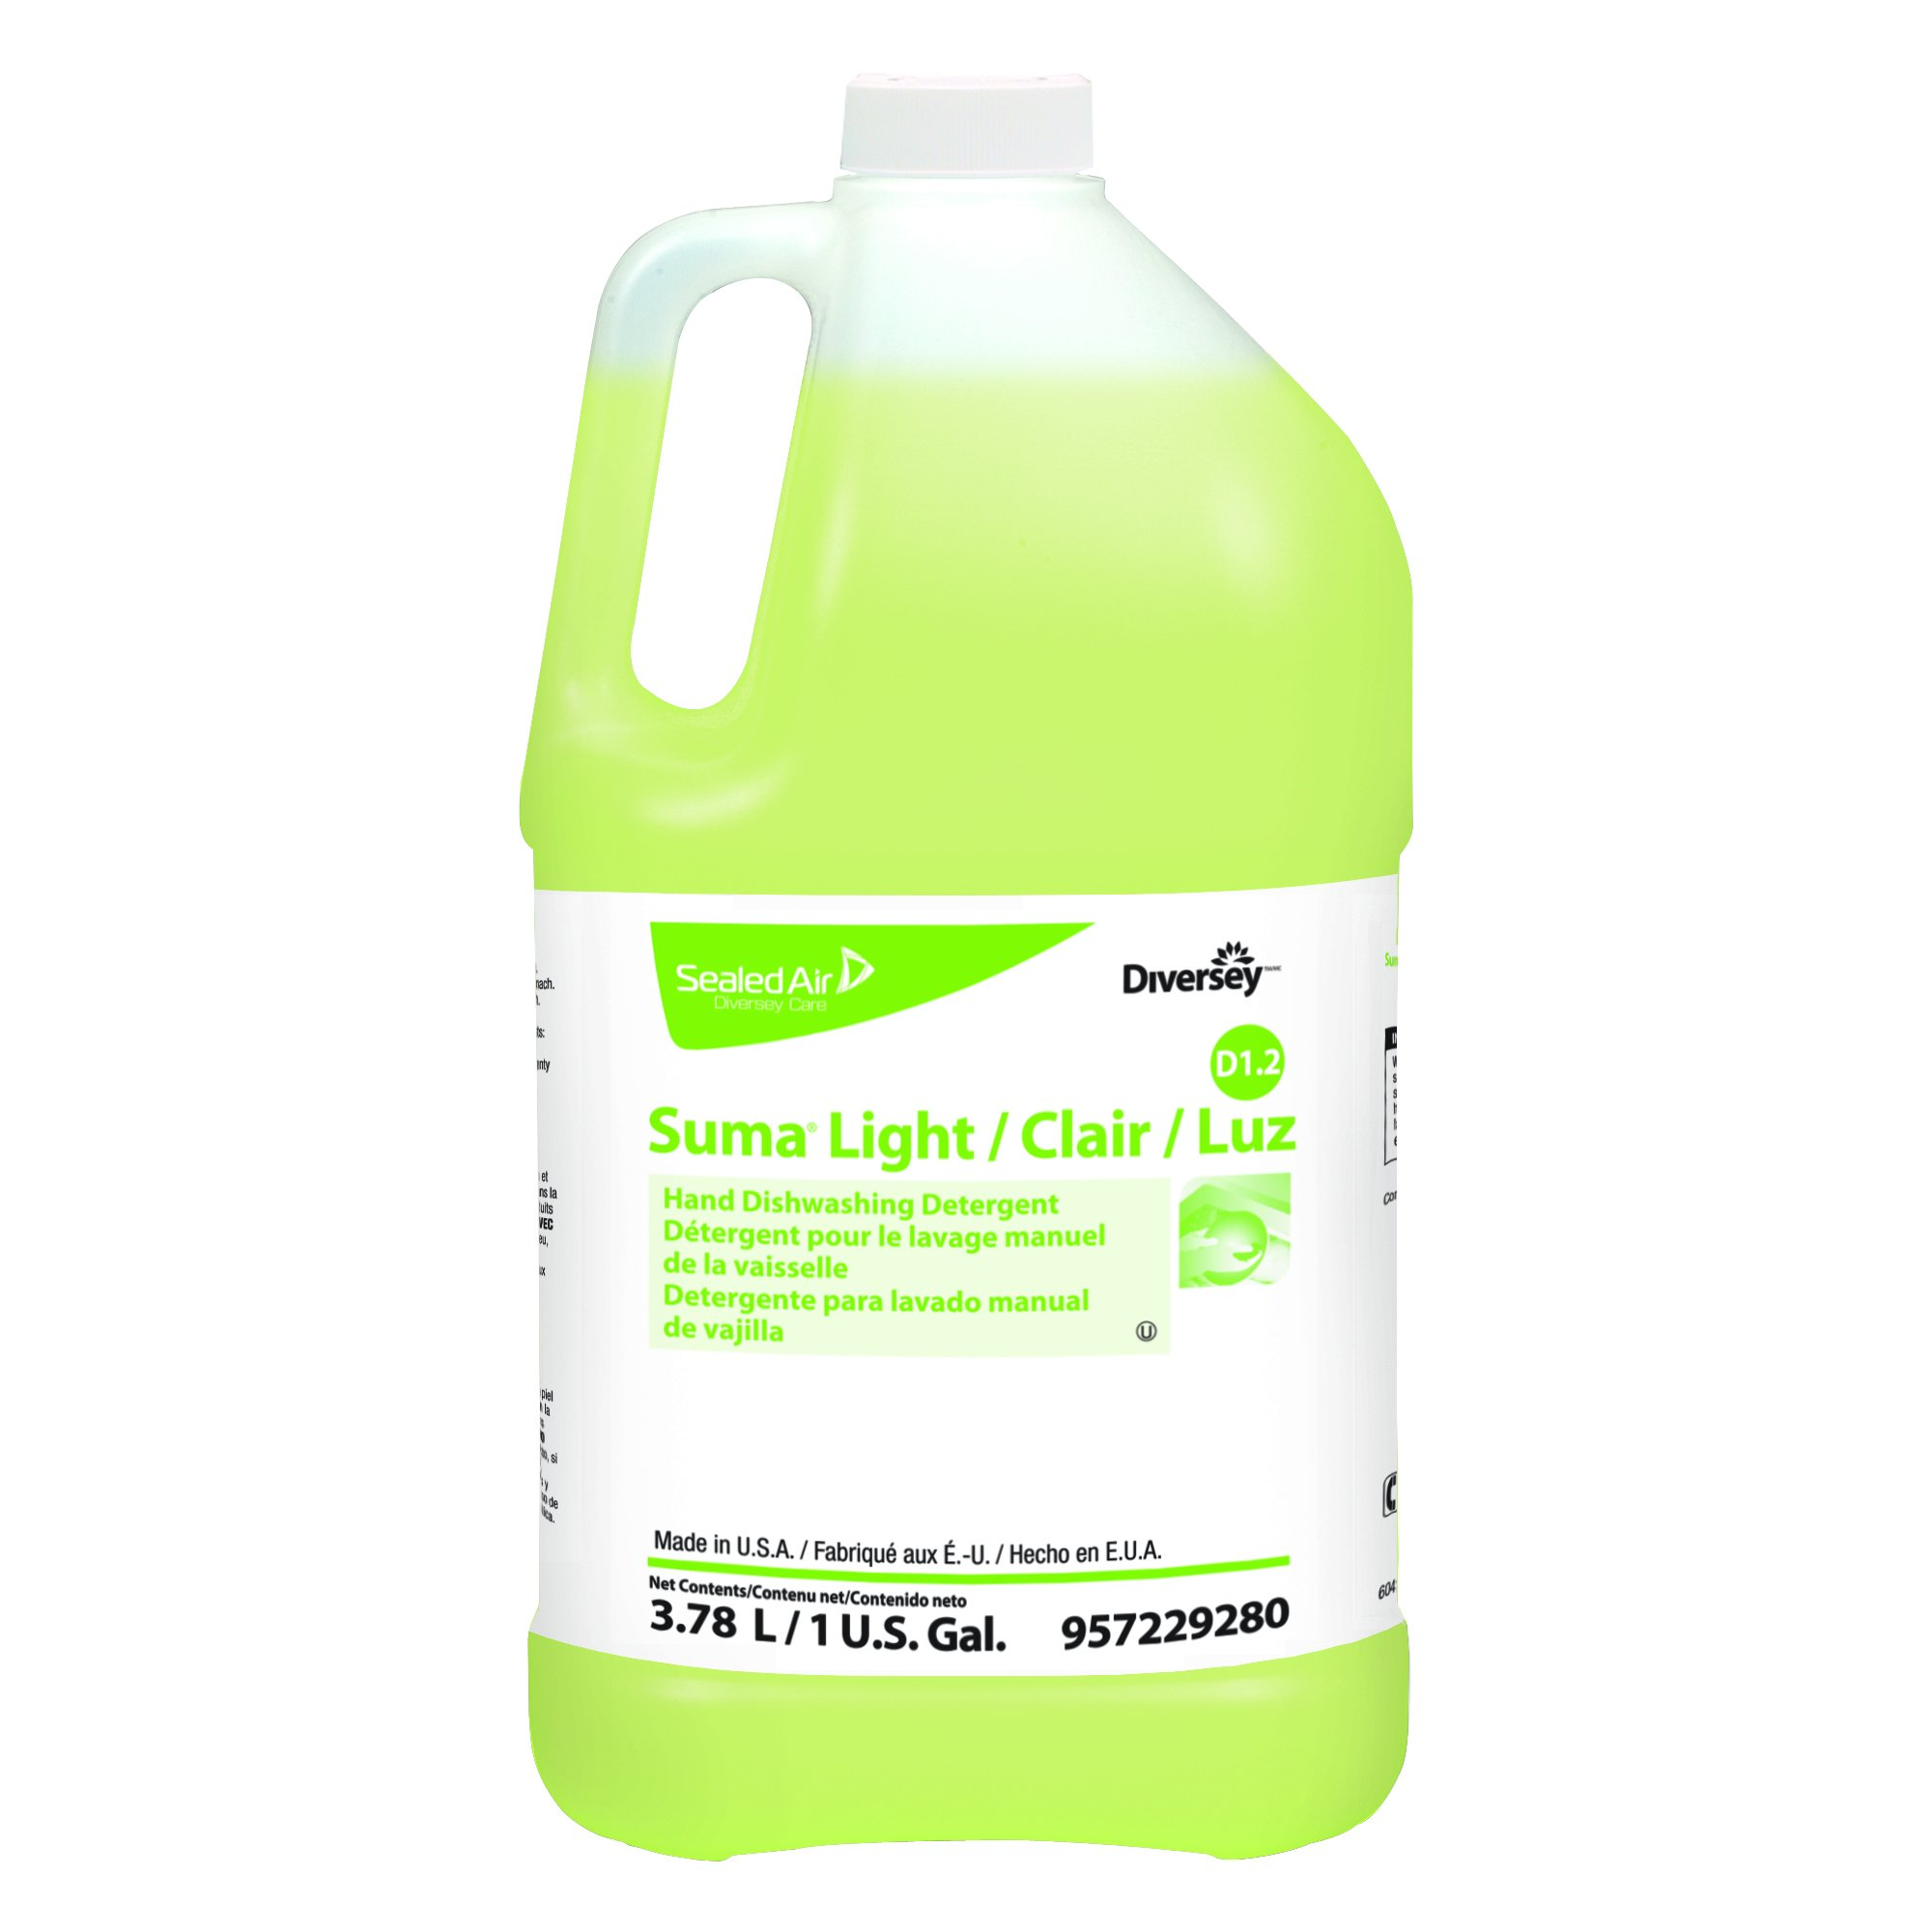 Diversey Suma Light D1.2 All-Purpose Liquid Detergent (1-Gallon, 4-Pack)